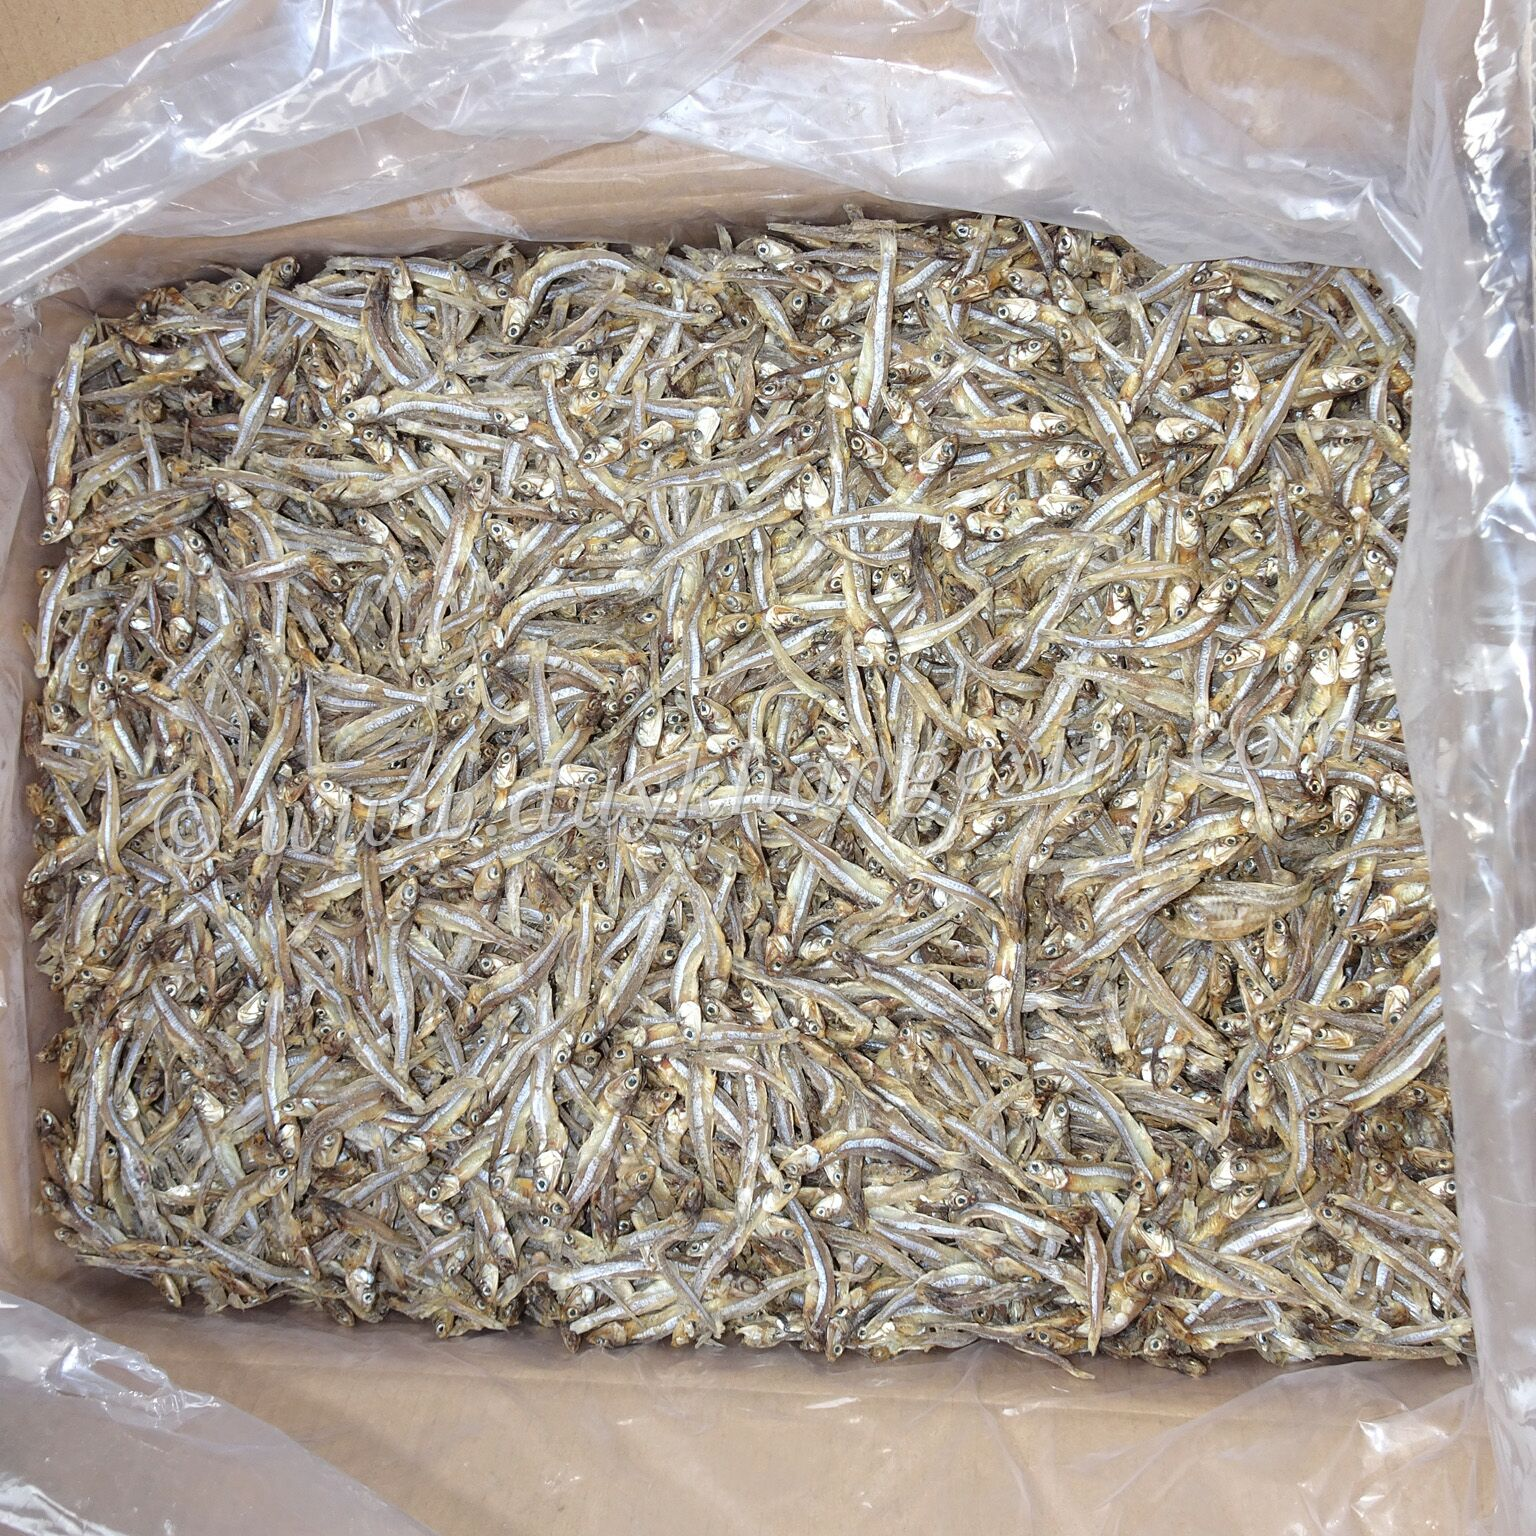 PREMIUM DRIED ANCHOVIES WITH ATTRACTIVE PRICE